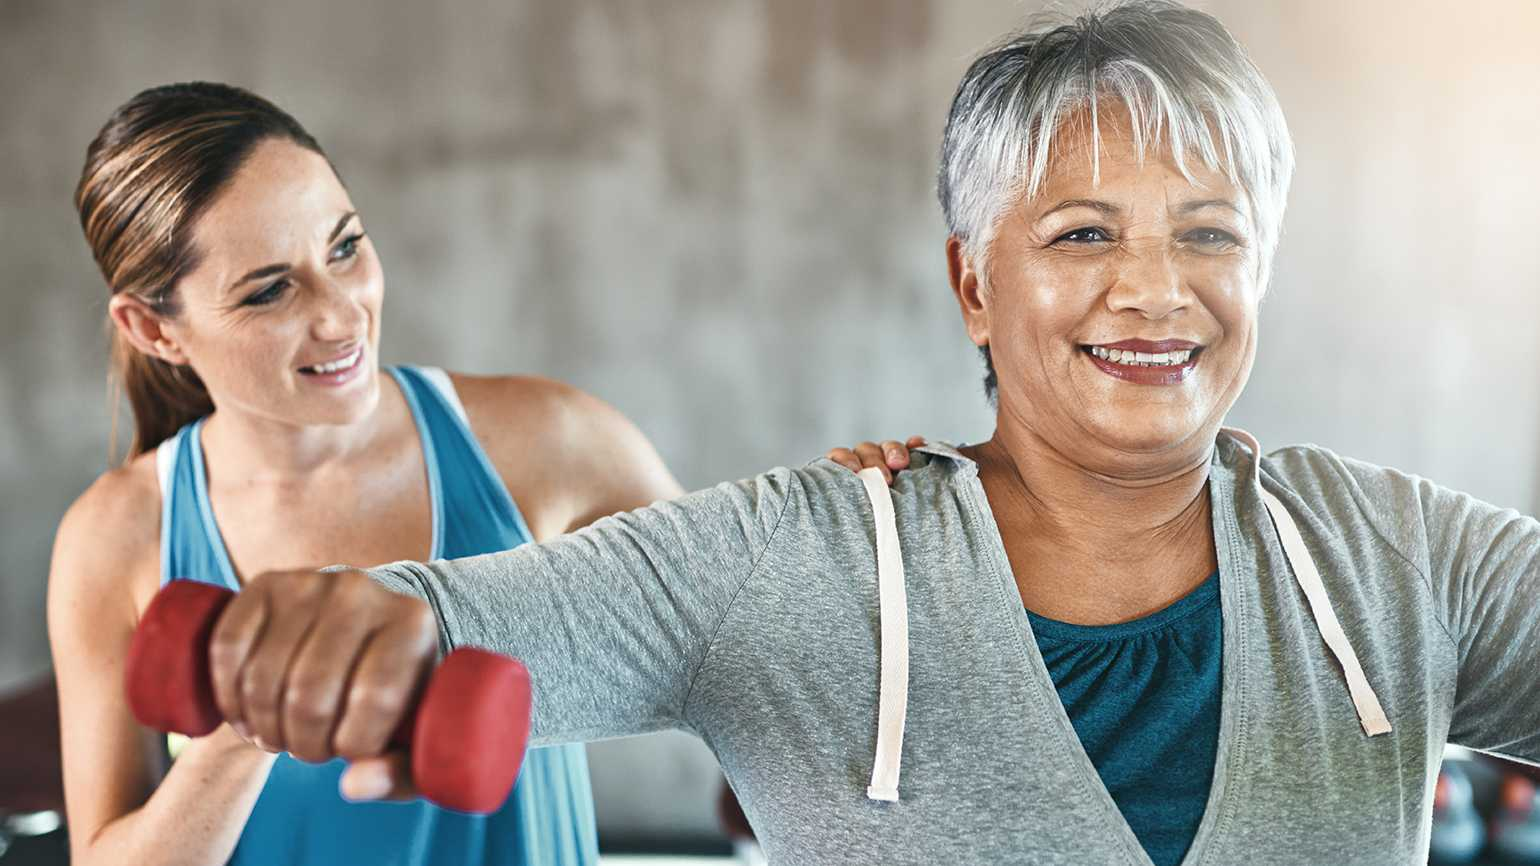 A mature woman lifts weights while her younger trainer looks on